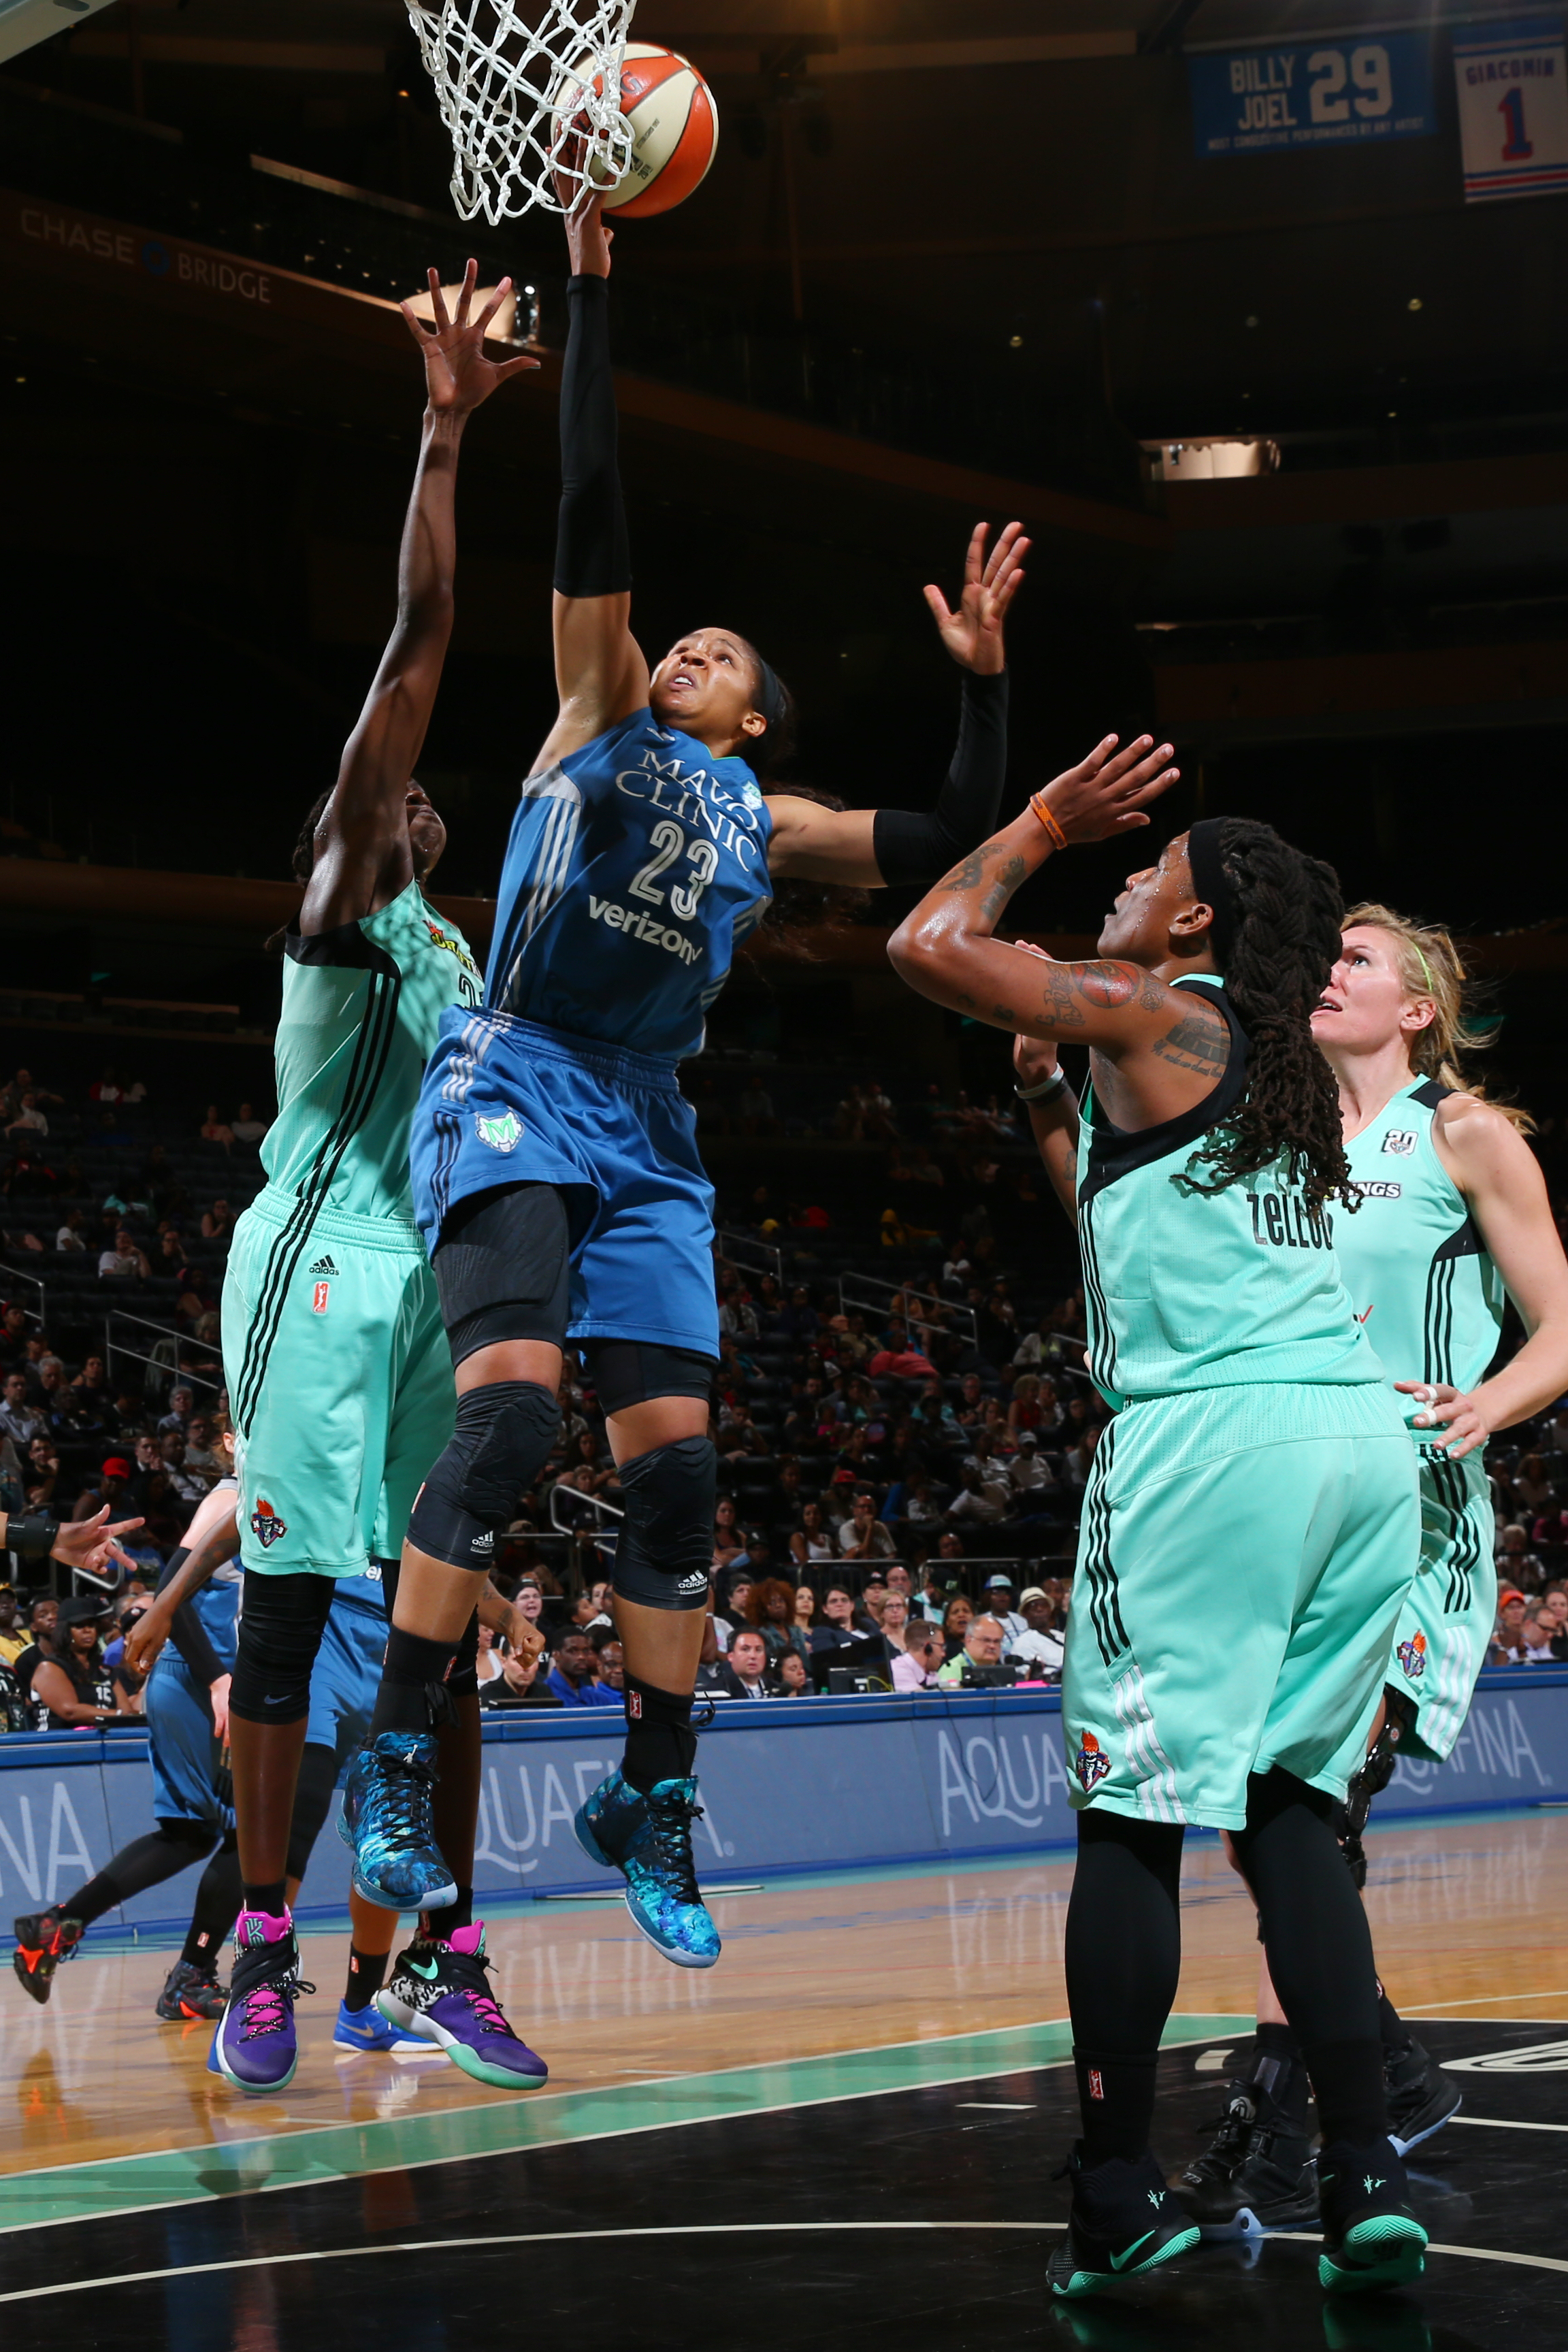 NEW YORK, NY - MAY 31: Renee Montgomery #21 of the Minnesota Lynx goes for the layup against the New York Liberty during the game on May 31, 2016 at Madison Square Garden in New York, New York. NOTE TO USER: User expressly acknowledges and agrees that, by downloading and or using this Photograph, user is consenting to the terms and conditions of the Getty Images License Agreement. Mandatory Copyright Notice: Copyright 2016 NBAE (Photo by Mike Stobe/NBAE via Getty Images)